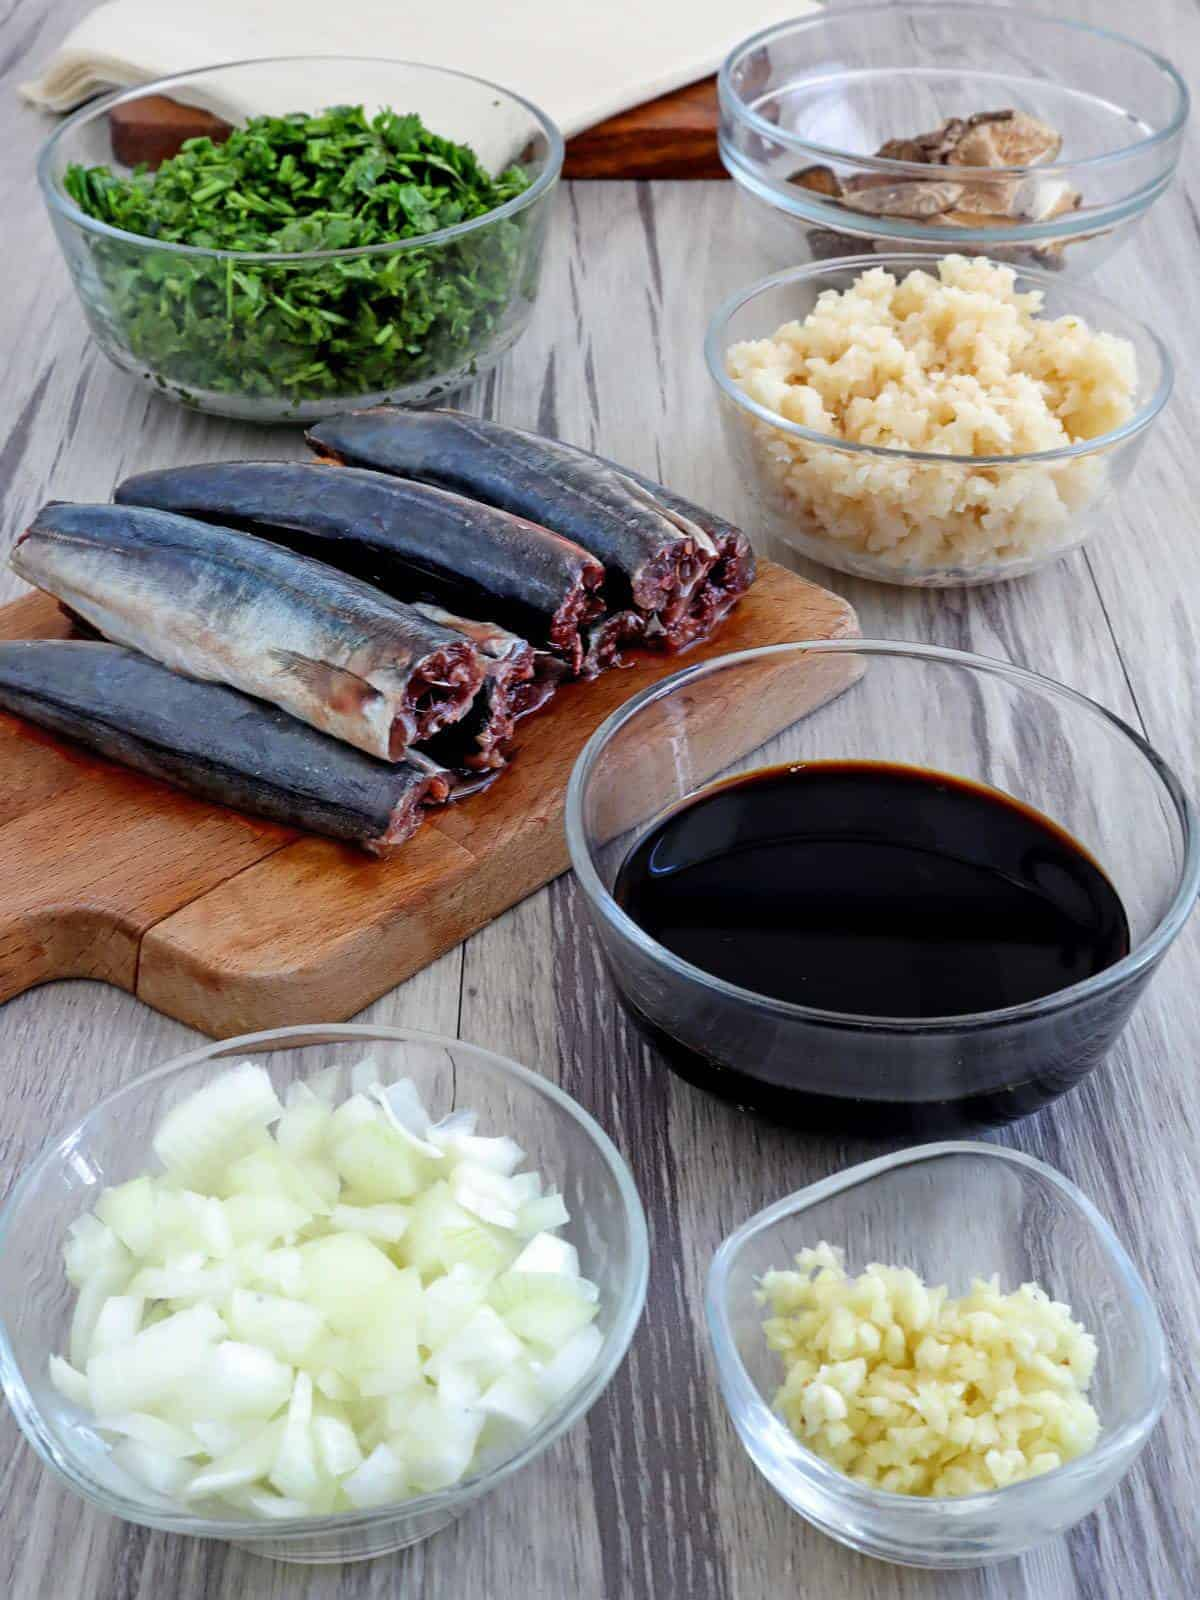 cleaned round scad fish on a cutting board and soy sauce, chestnuts, onions, Chinese celery, garlic in individual bowls